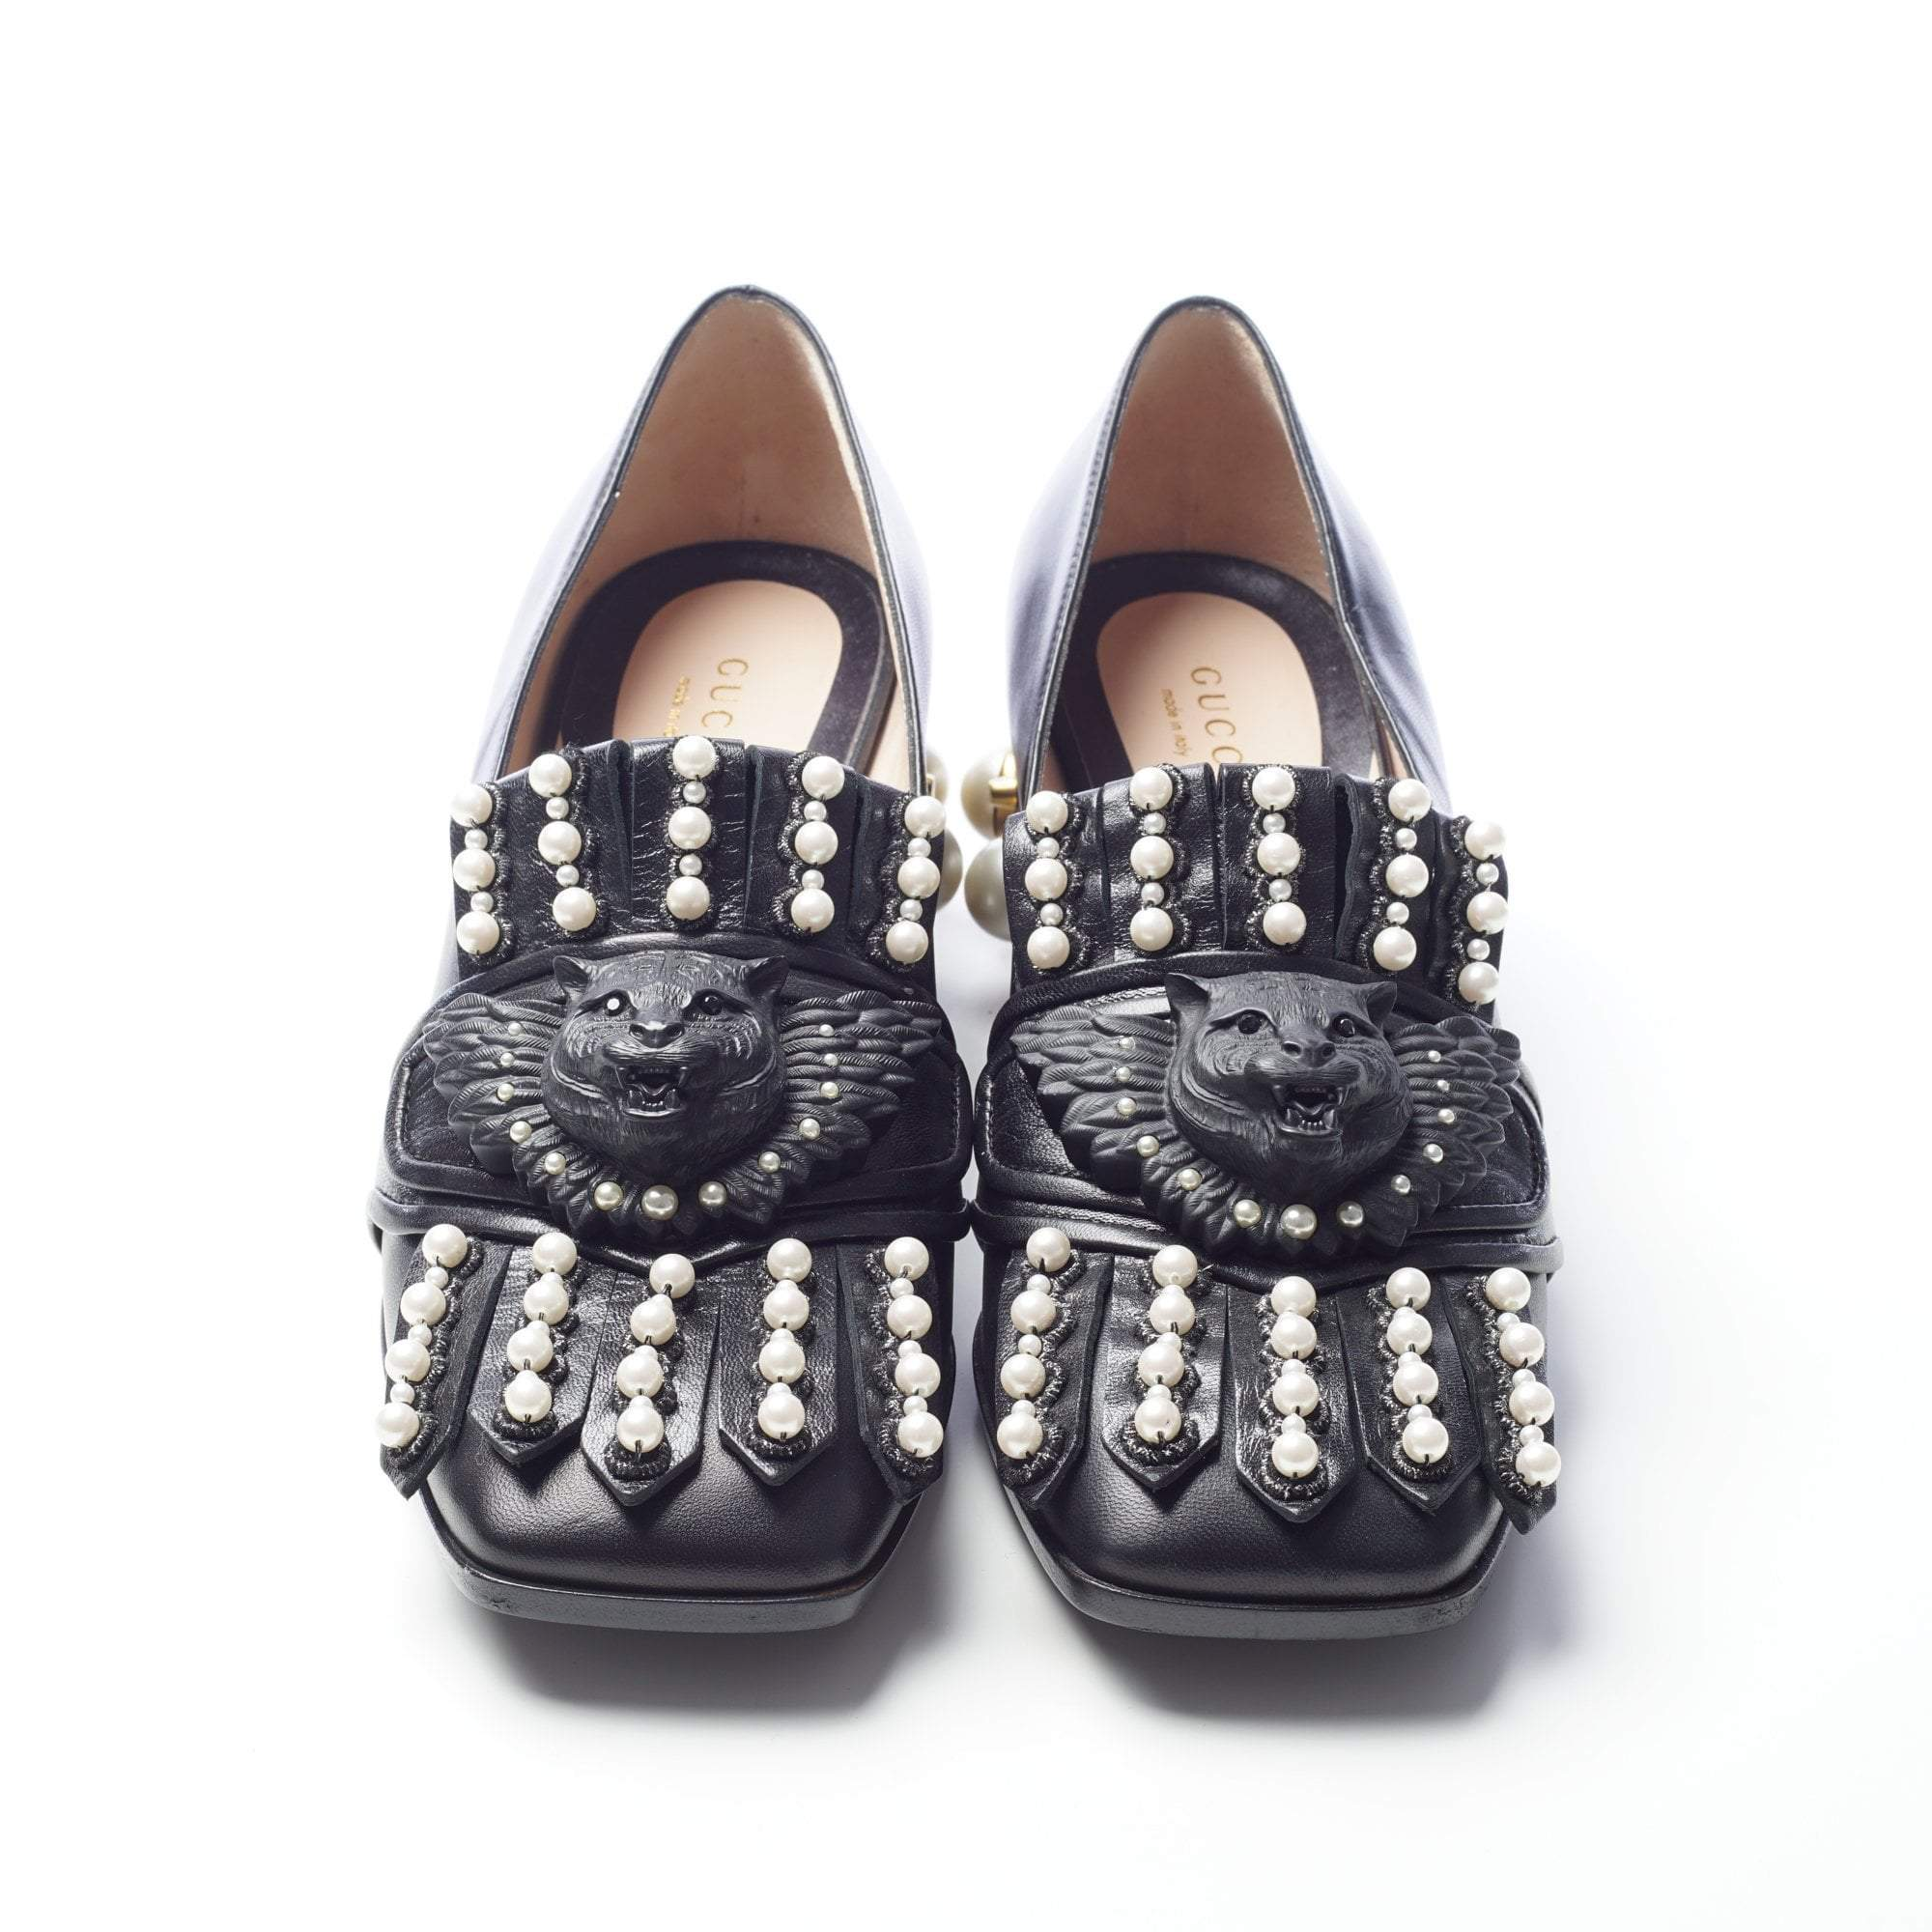 Gucci Calf-Leather Block Heel Loafer Shoes with Imitation Pearls Studs